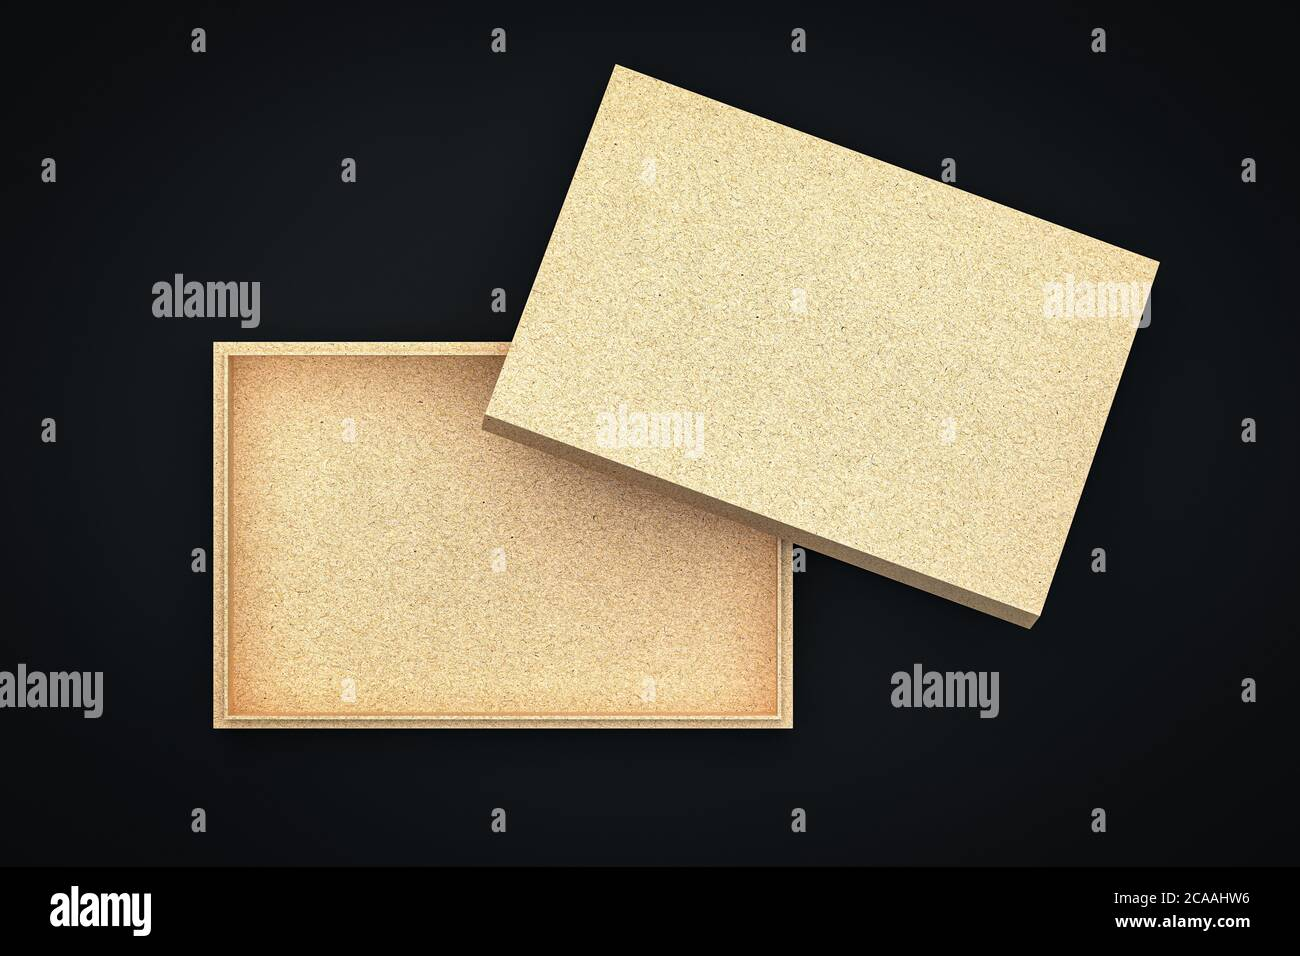 Craft Cardboard Gift Box Mockup With Opened Cover Flat Top View Isolated On Black Stock Photo Alamy